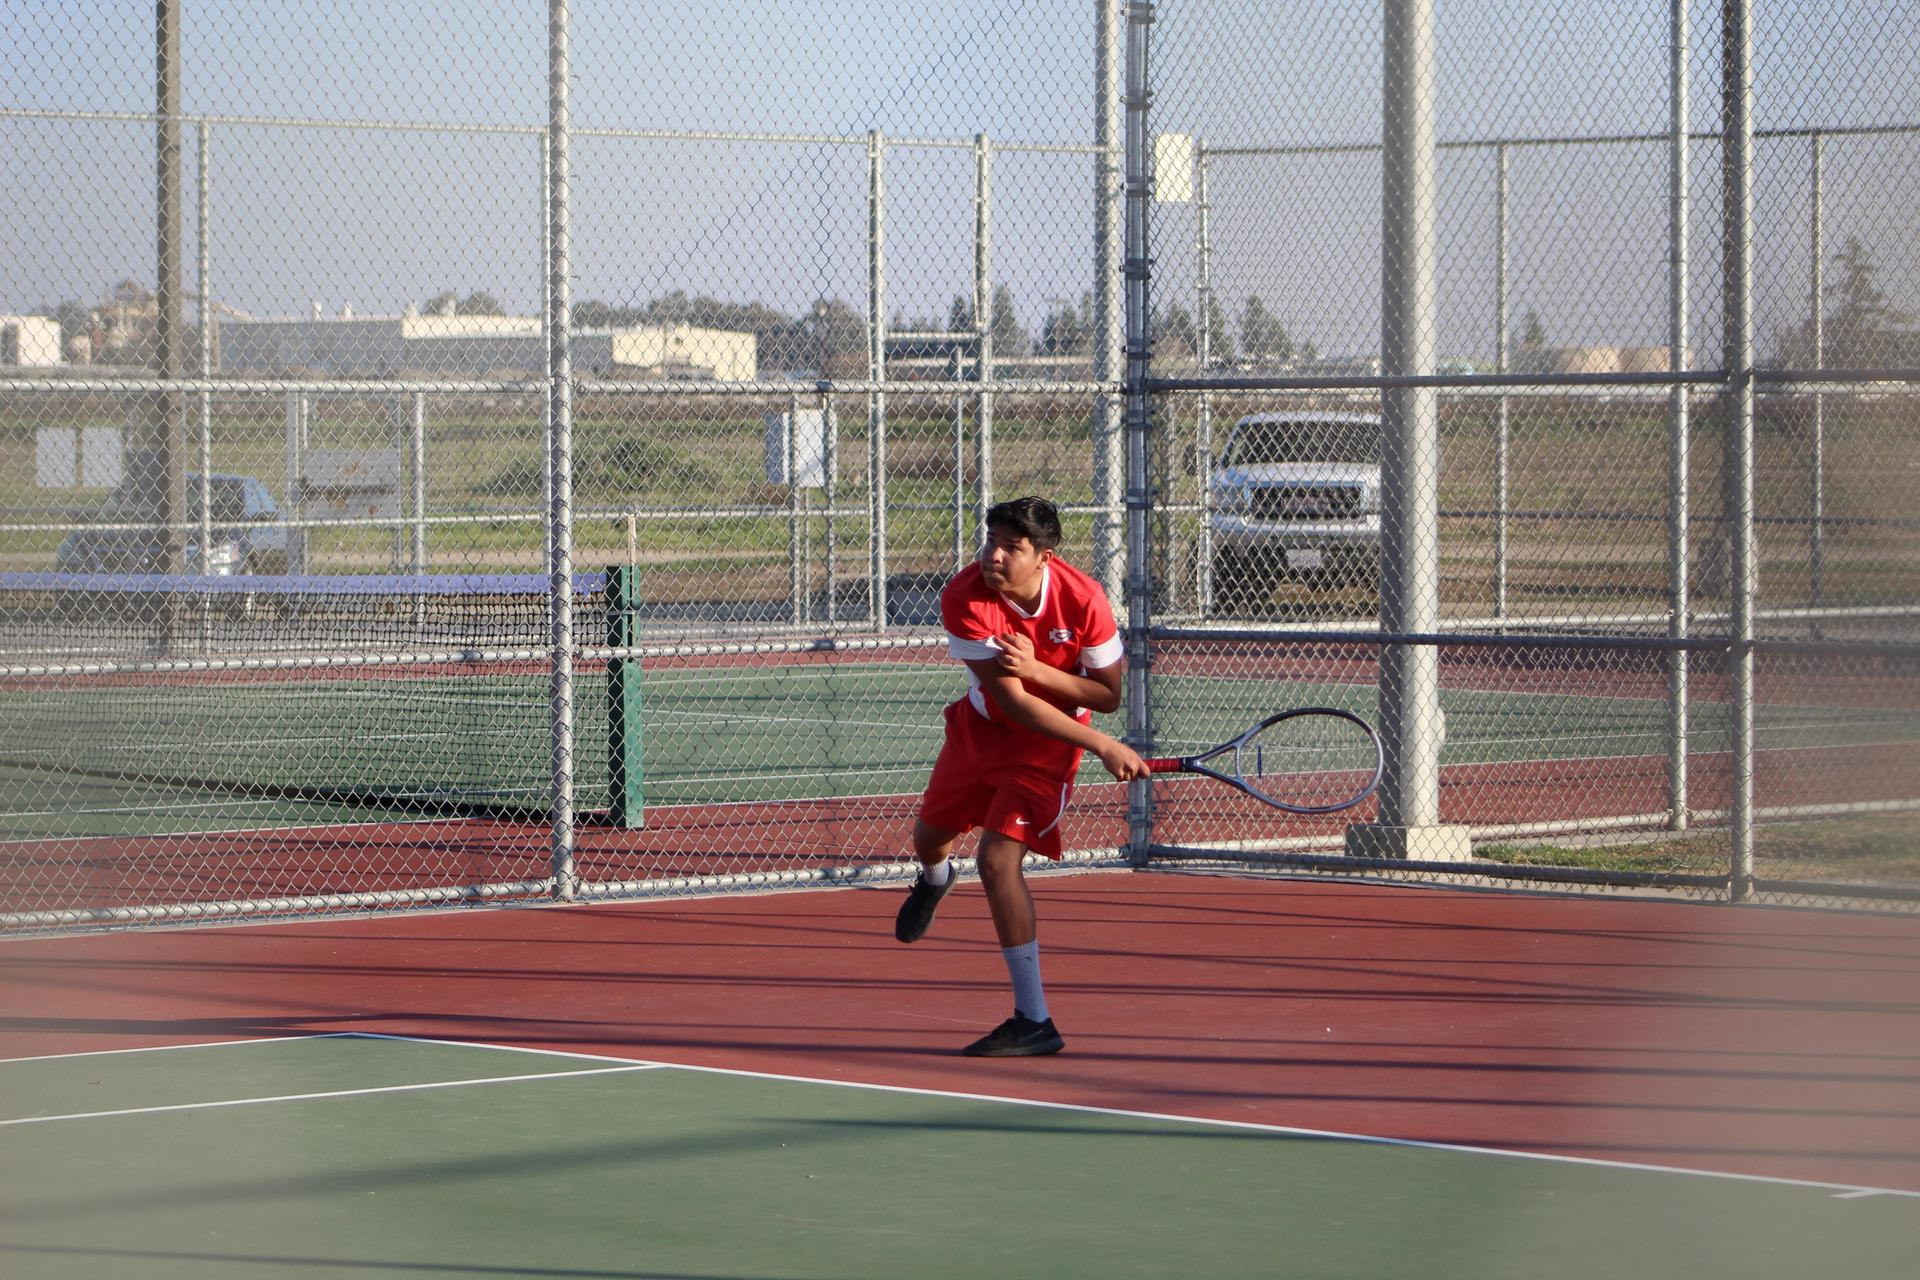 boys playing tennis against Roosevelt